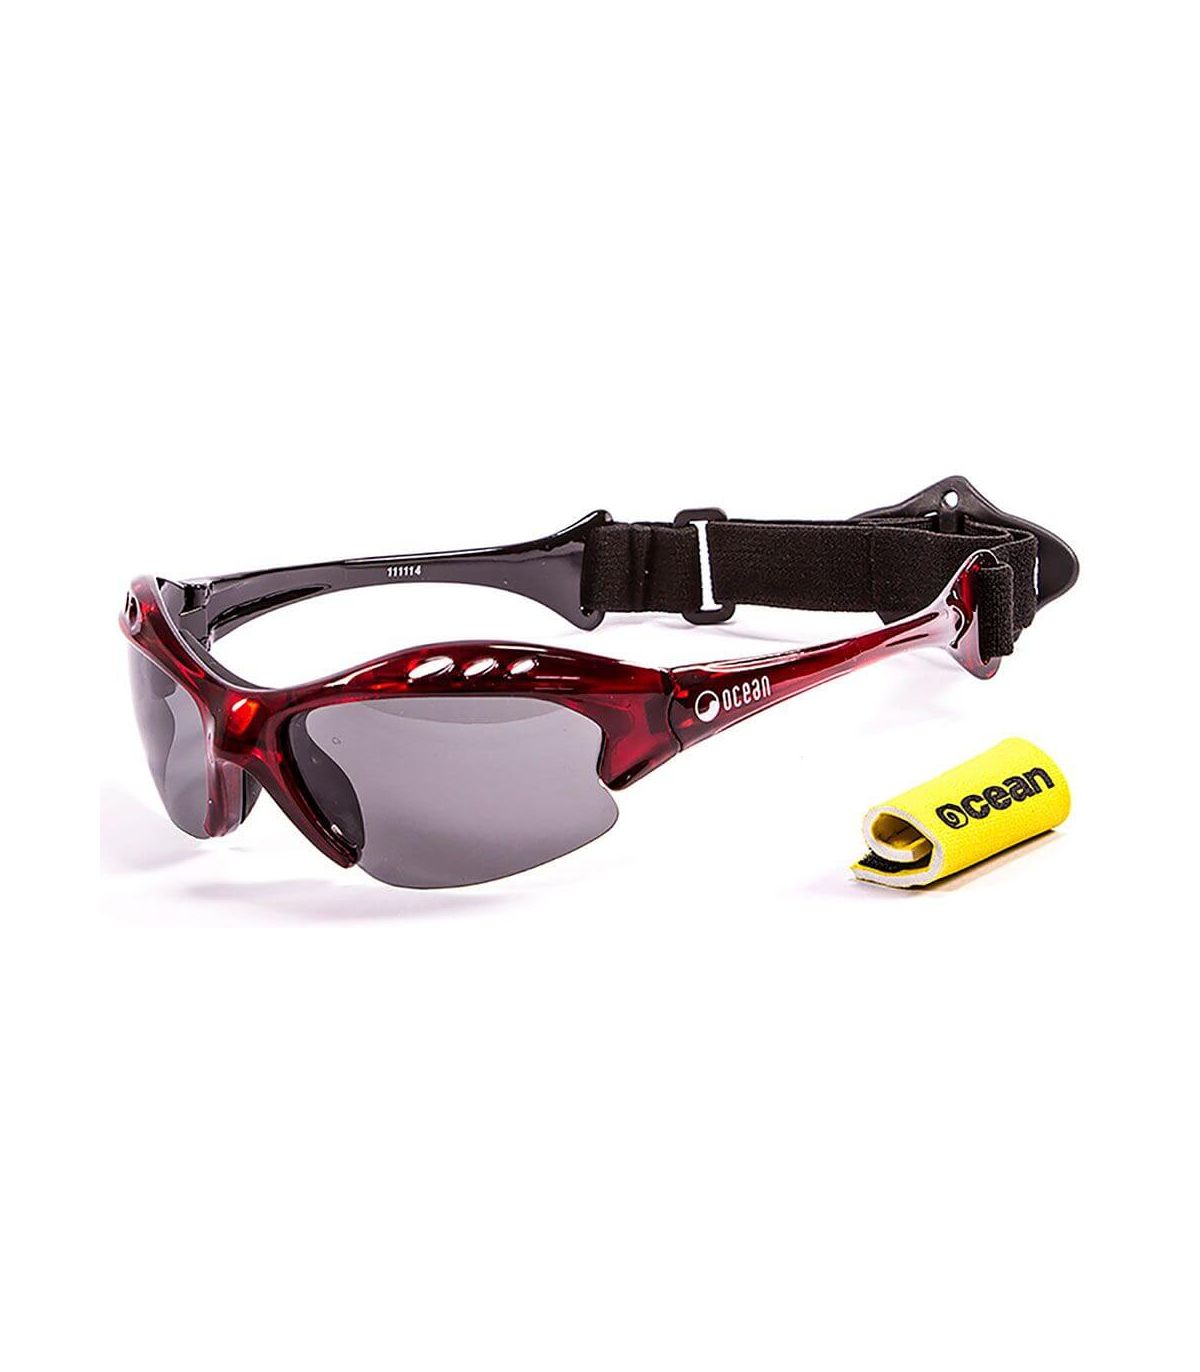 Ocean Mauricio Shiny Red / Smoke Ocean Sunglasses Gafas de sol Running Running Color: rojo